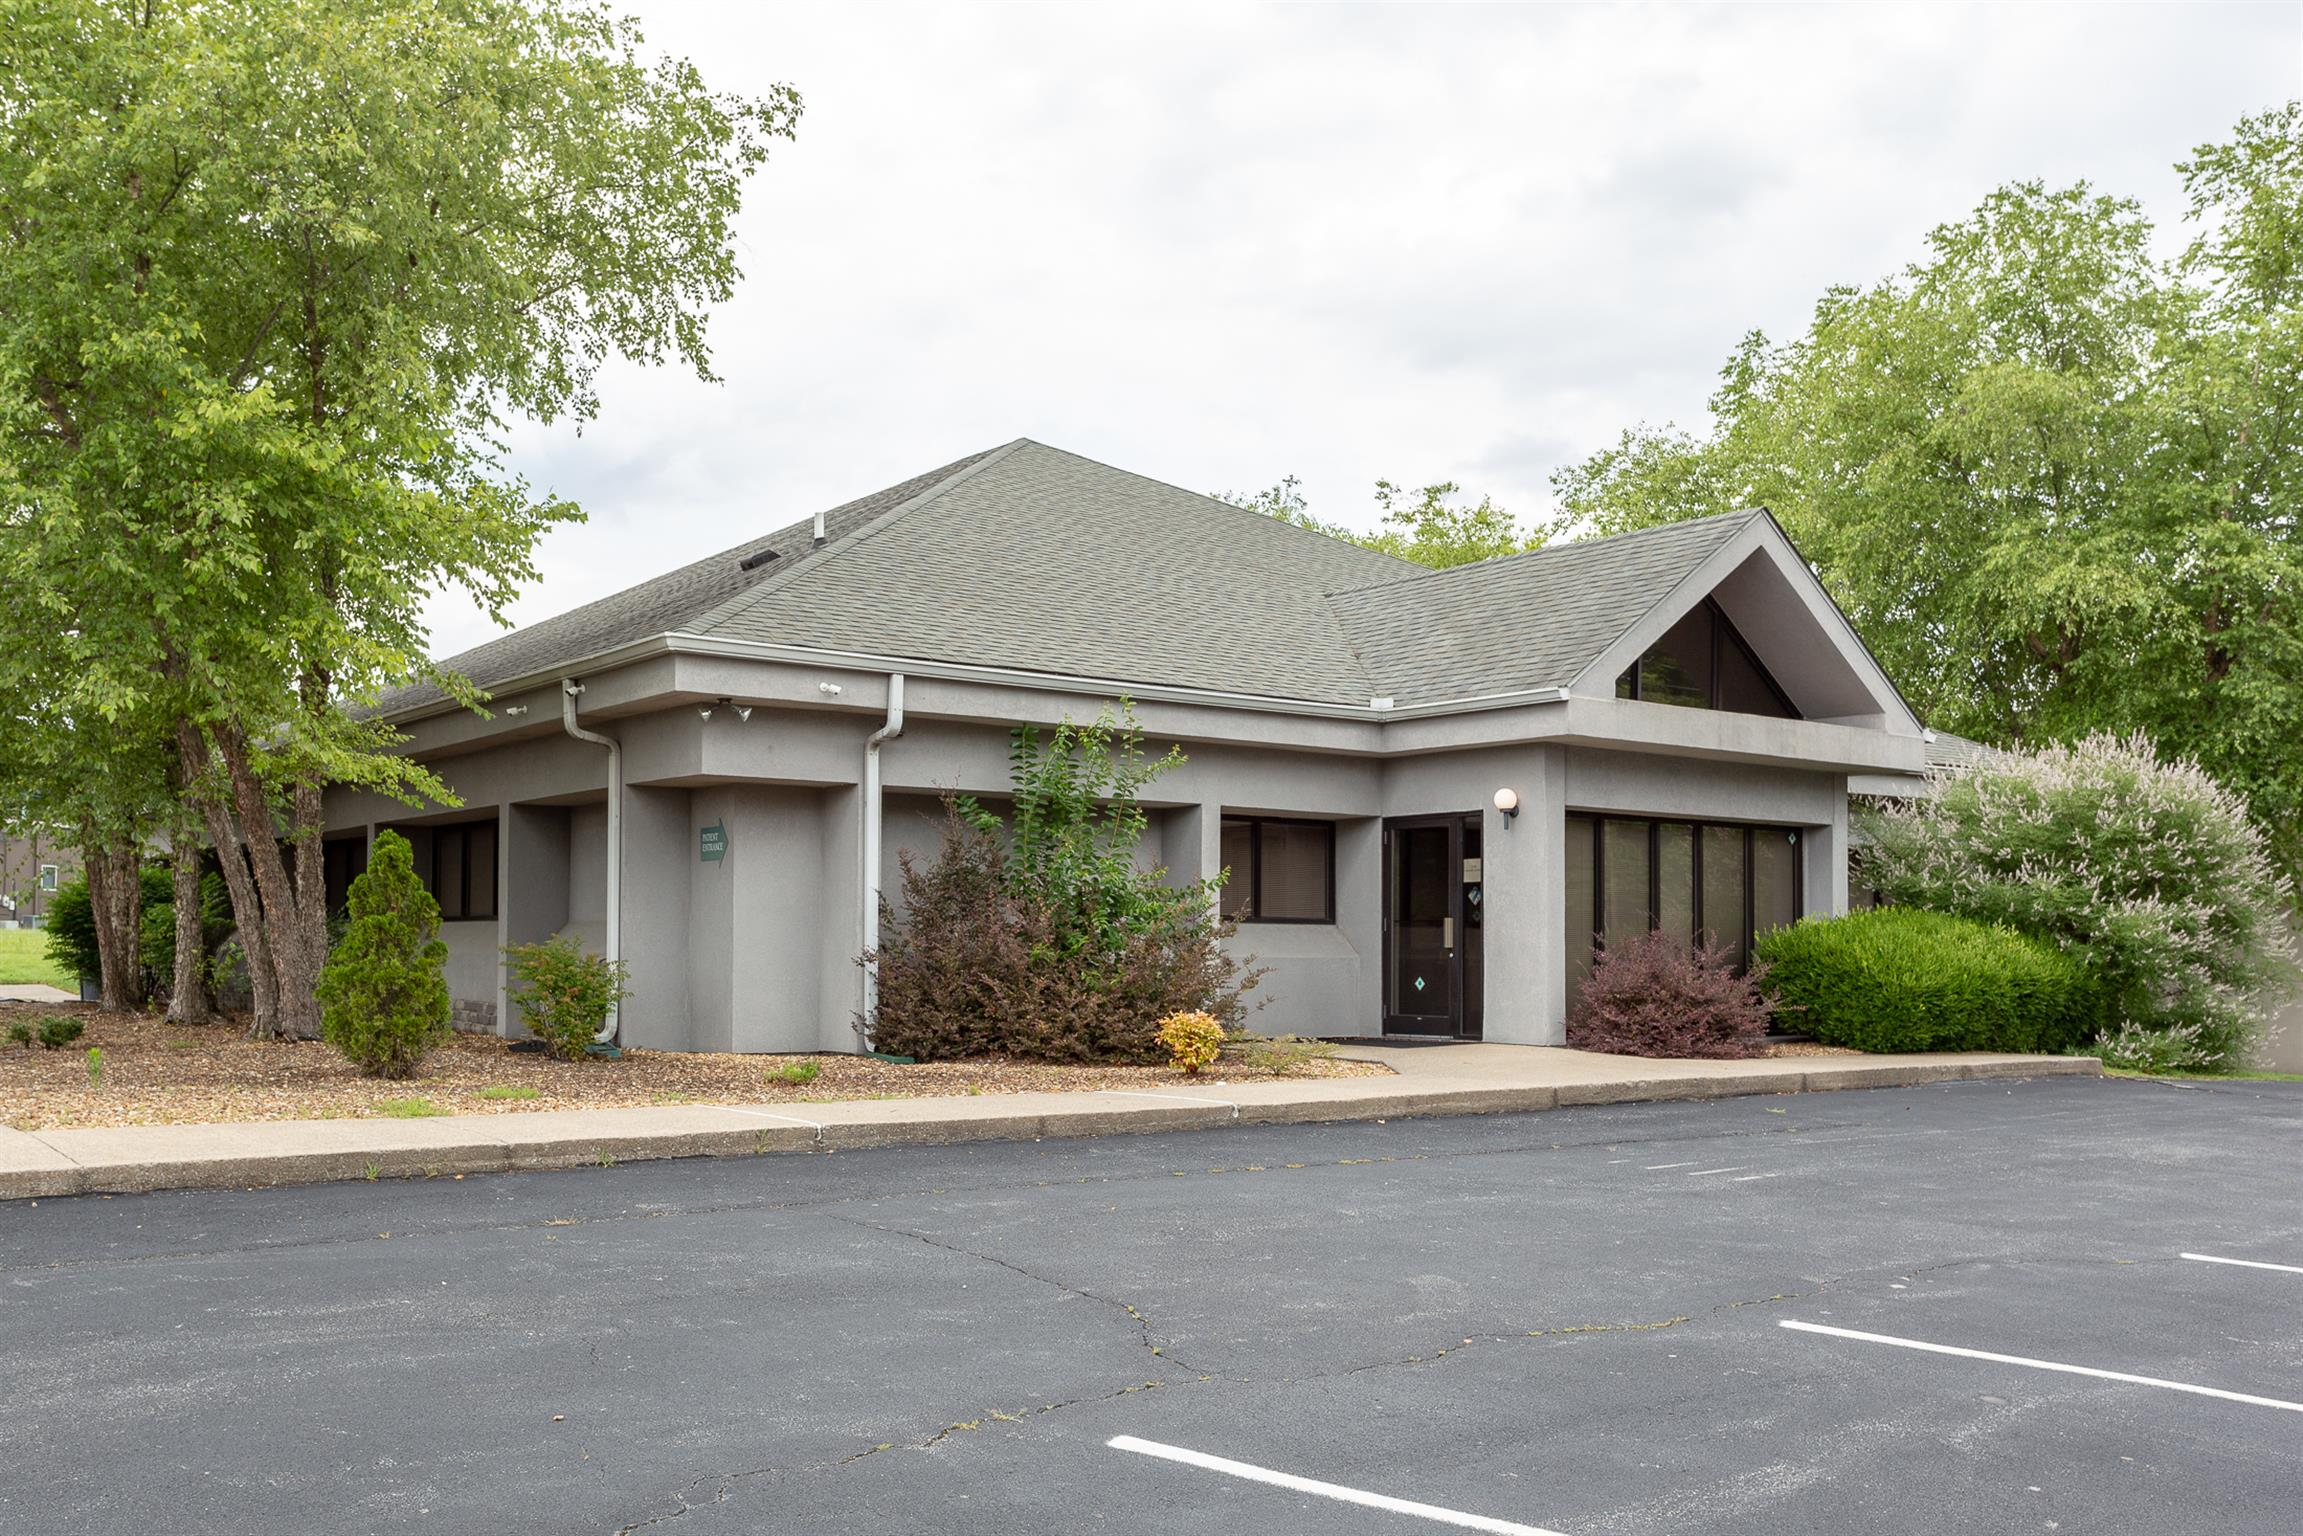 MULTI-PURPOSE BUILDING CURRENTLY HOUSES CLARKSVILLE PSYCHOLOGICAL SERVICES/ALSO HAS ADJOINING PARCEL AND SERVICE ROAD TO MADISON ST/32 PARKING SPACES/TILED ENTRY FOYER/30X13 WAITING ROOM/GLASSED RECEPTION AREA/10 OFFICES/4 BATHS/KITCHEN/CONFERENCE ROOM/SECURITY SYSTEM/2 GAS FURNACES/BUILDING IN EXCELLENT CONDITION